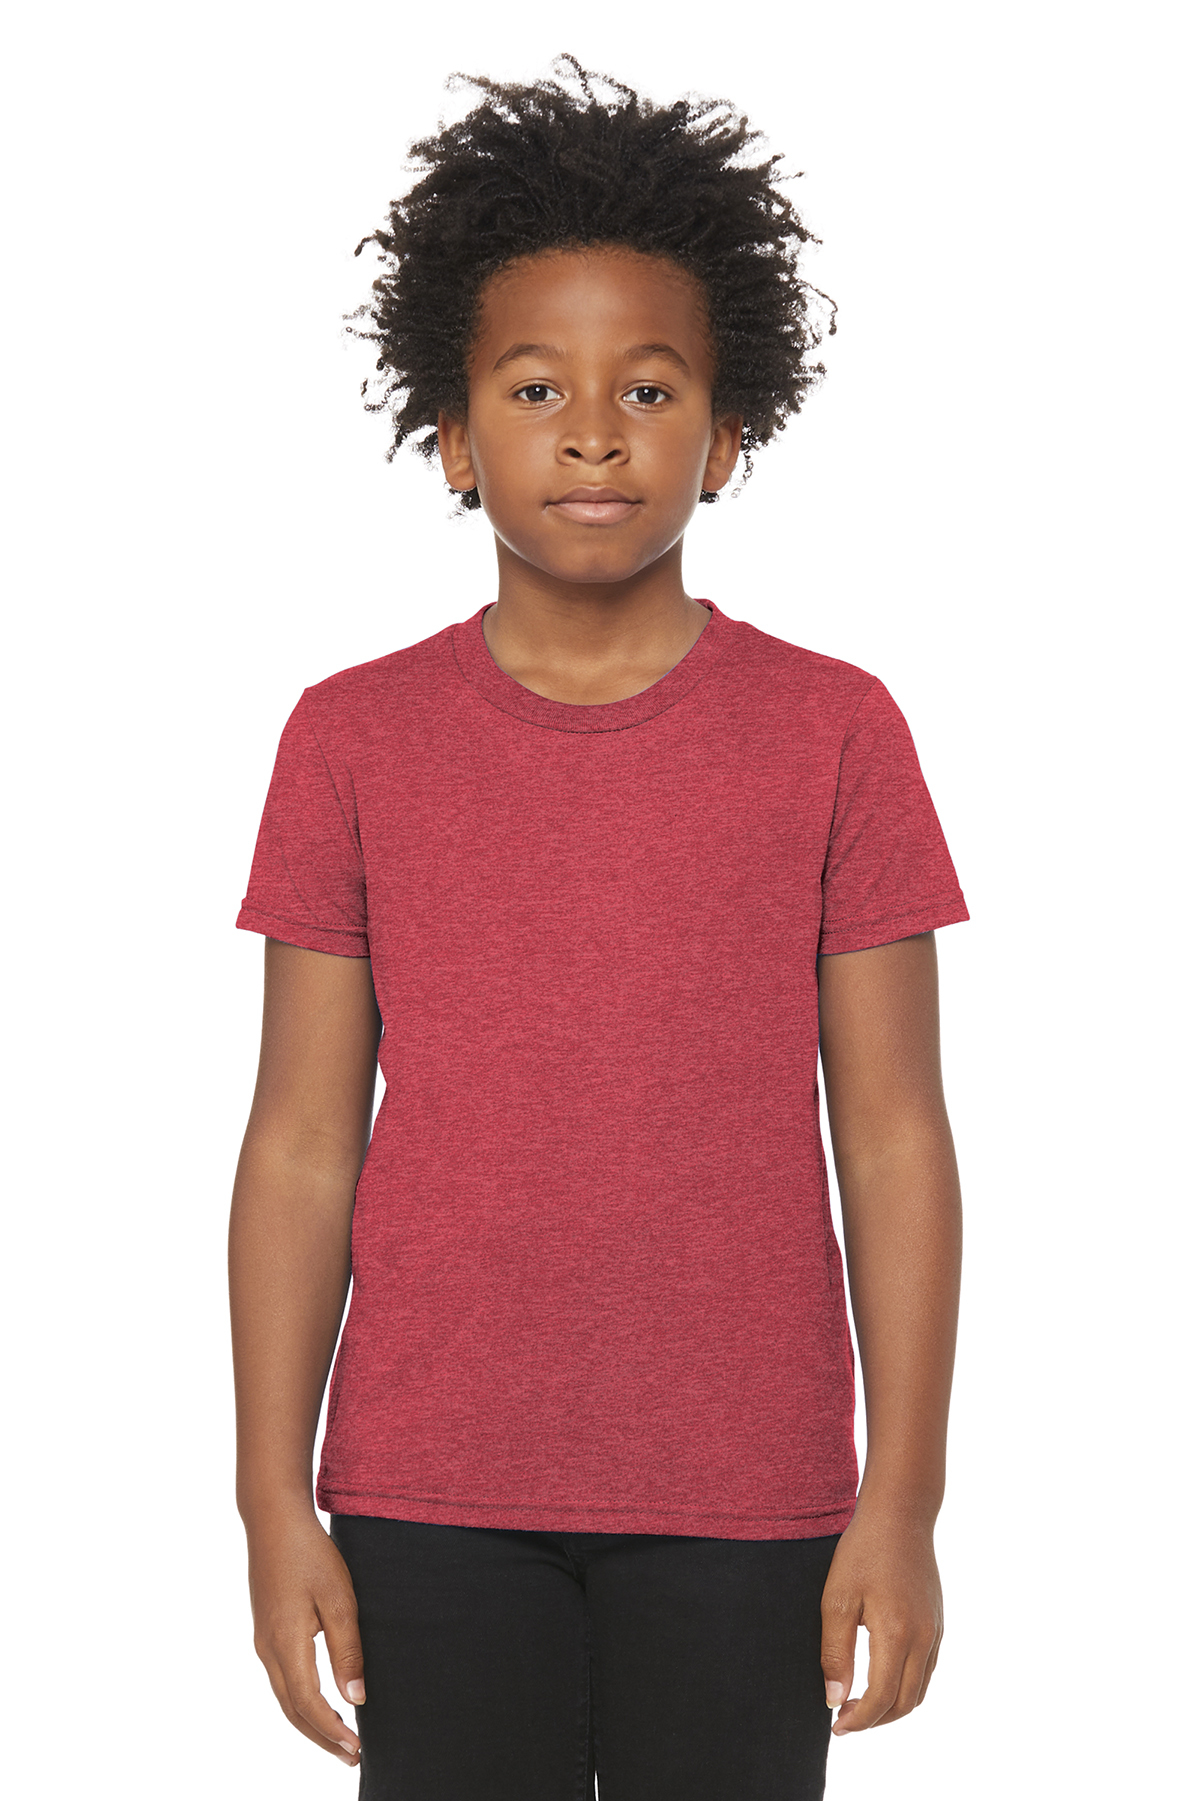 74ff2efe BELLA+CANVAS ® Youth Jersey Short Sleeve Tee | Youth | T-Shirts ...